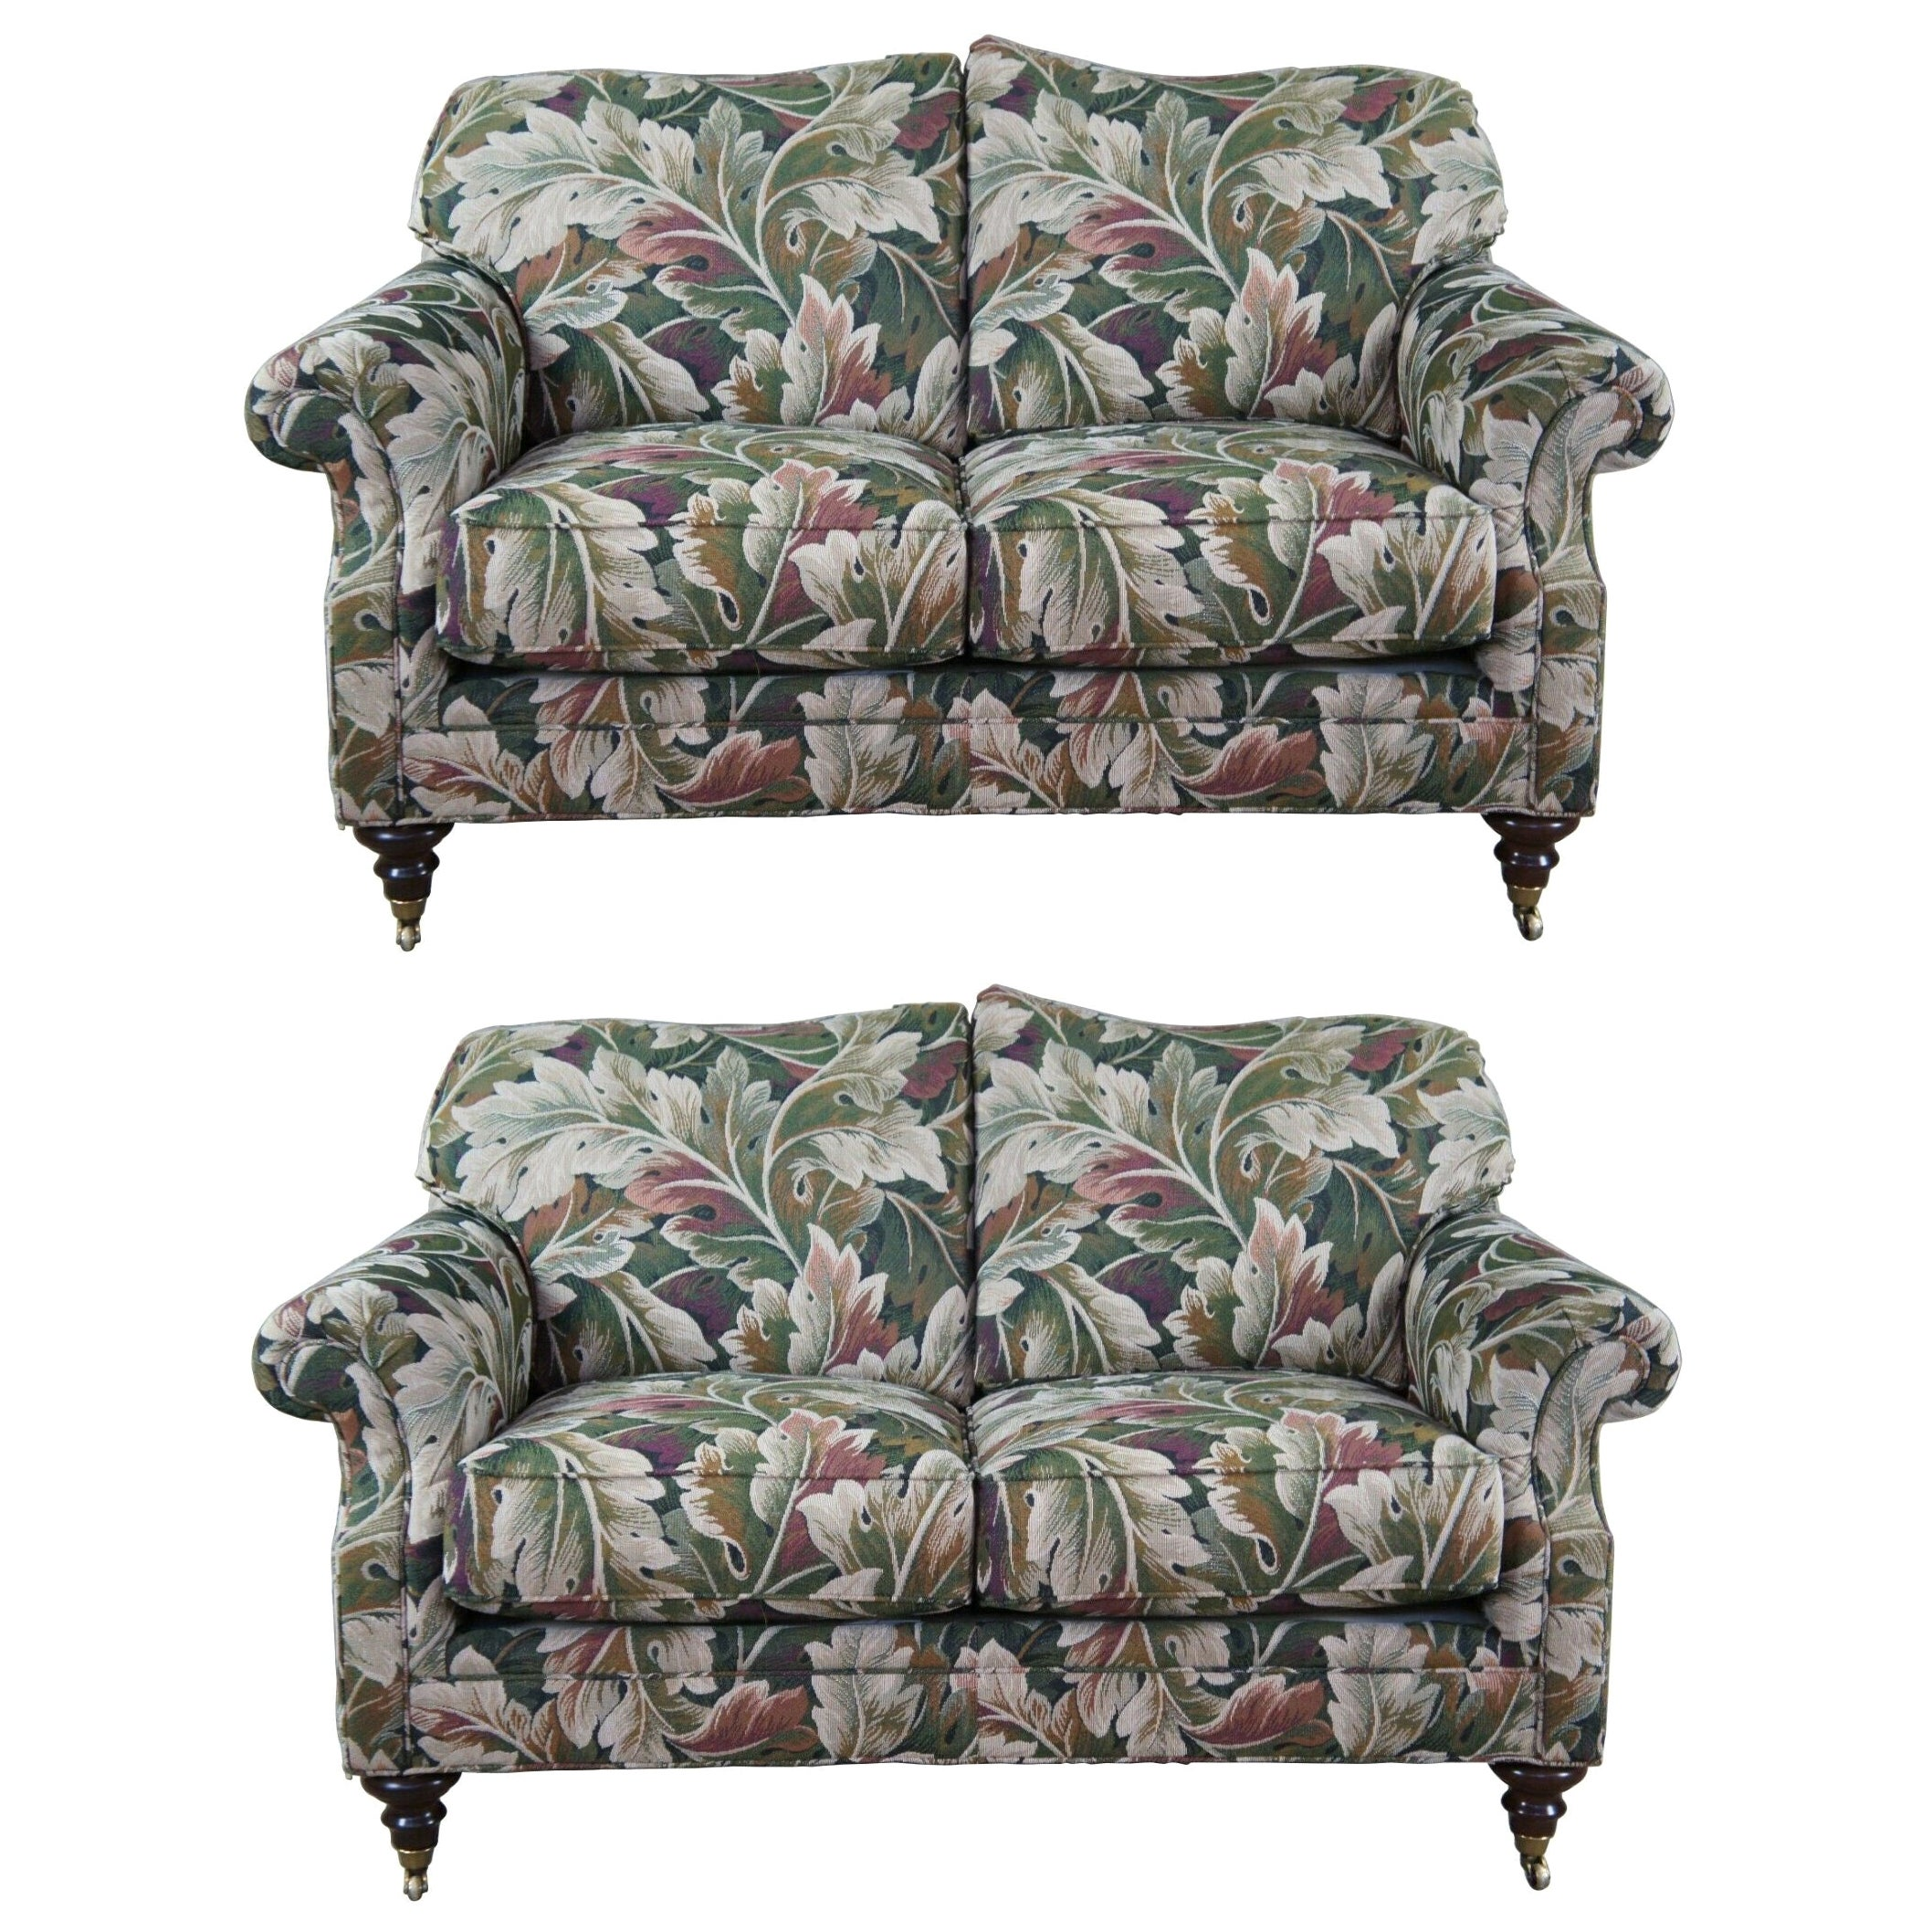 2 Vintage Pearson Furniture Camelback Loveseats Settee Sofa Couch Floral Pair